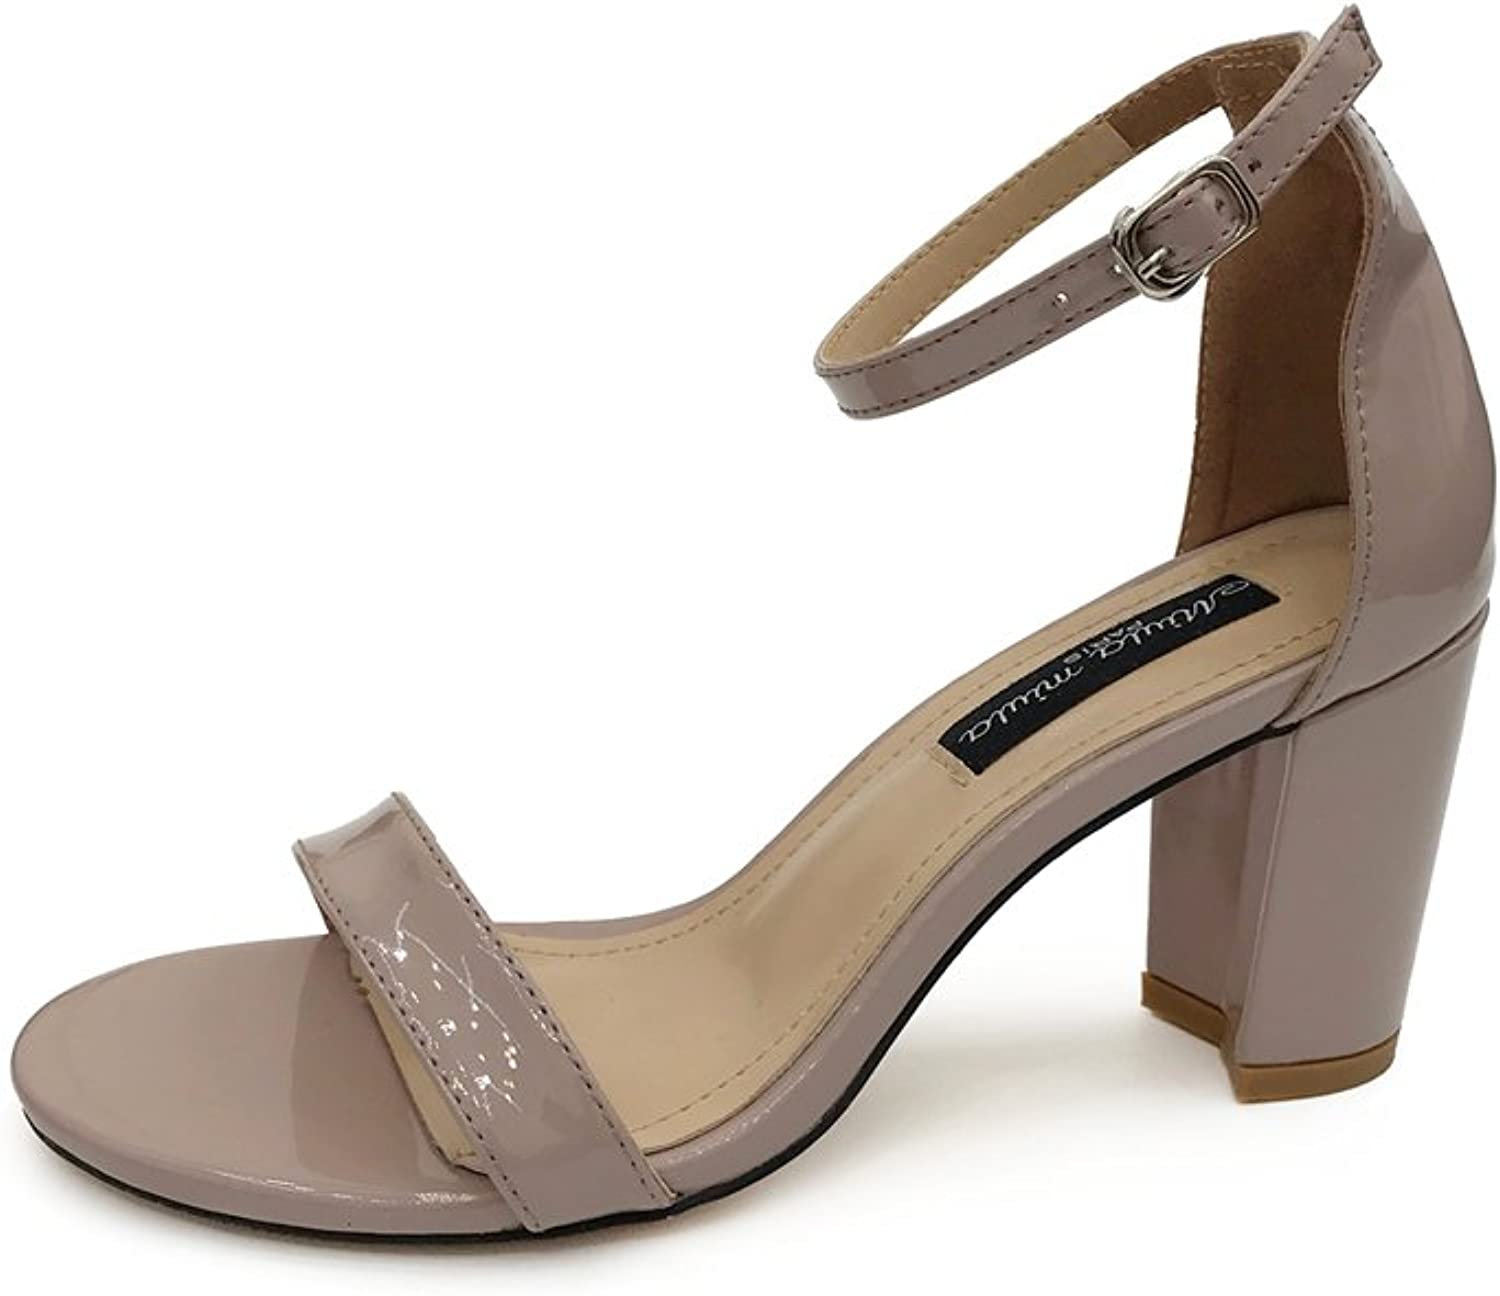 Jiang Womens's shoes Female Summer New Sexy Comfortable Thick with Simple Wild High-Heeled Sandals shoes Sandals